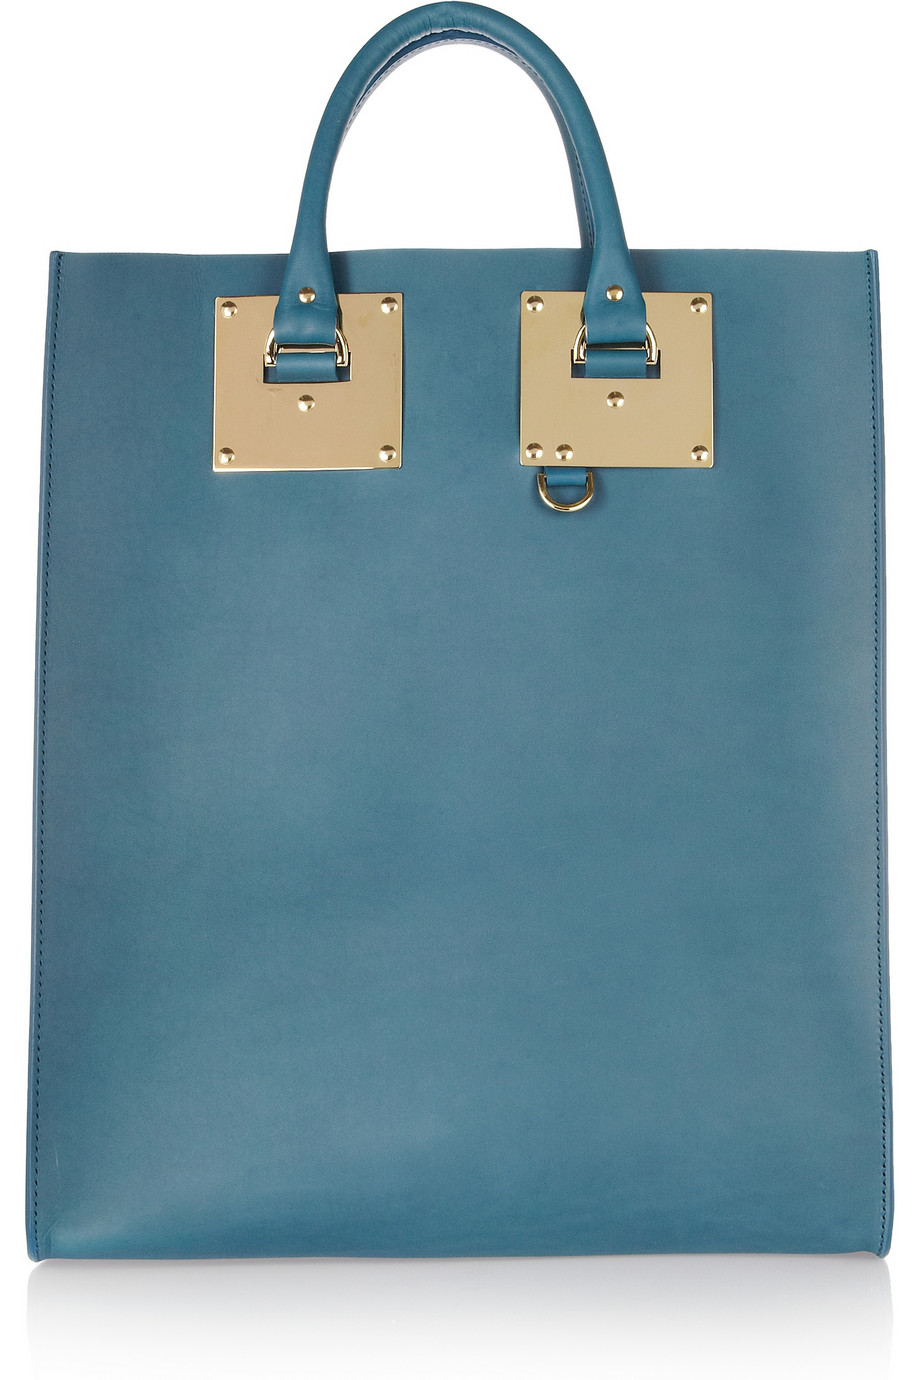 Sophie Hulme – Leather Tote in Brillian Blue